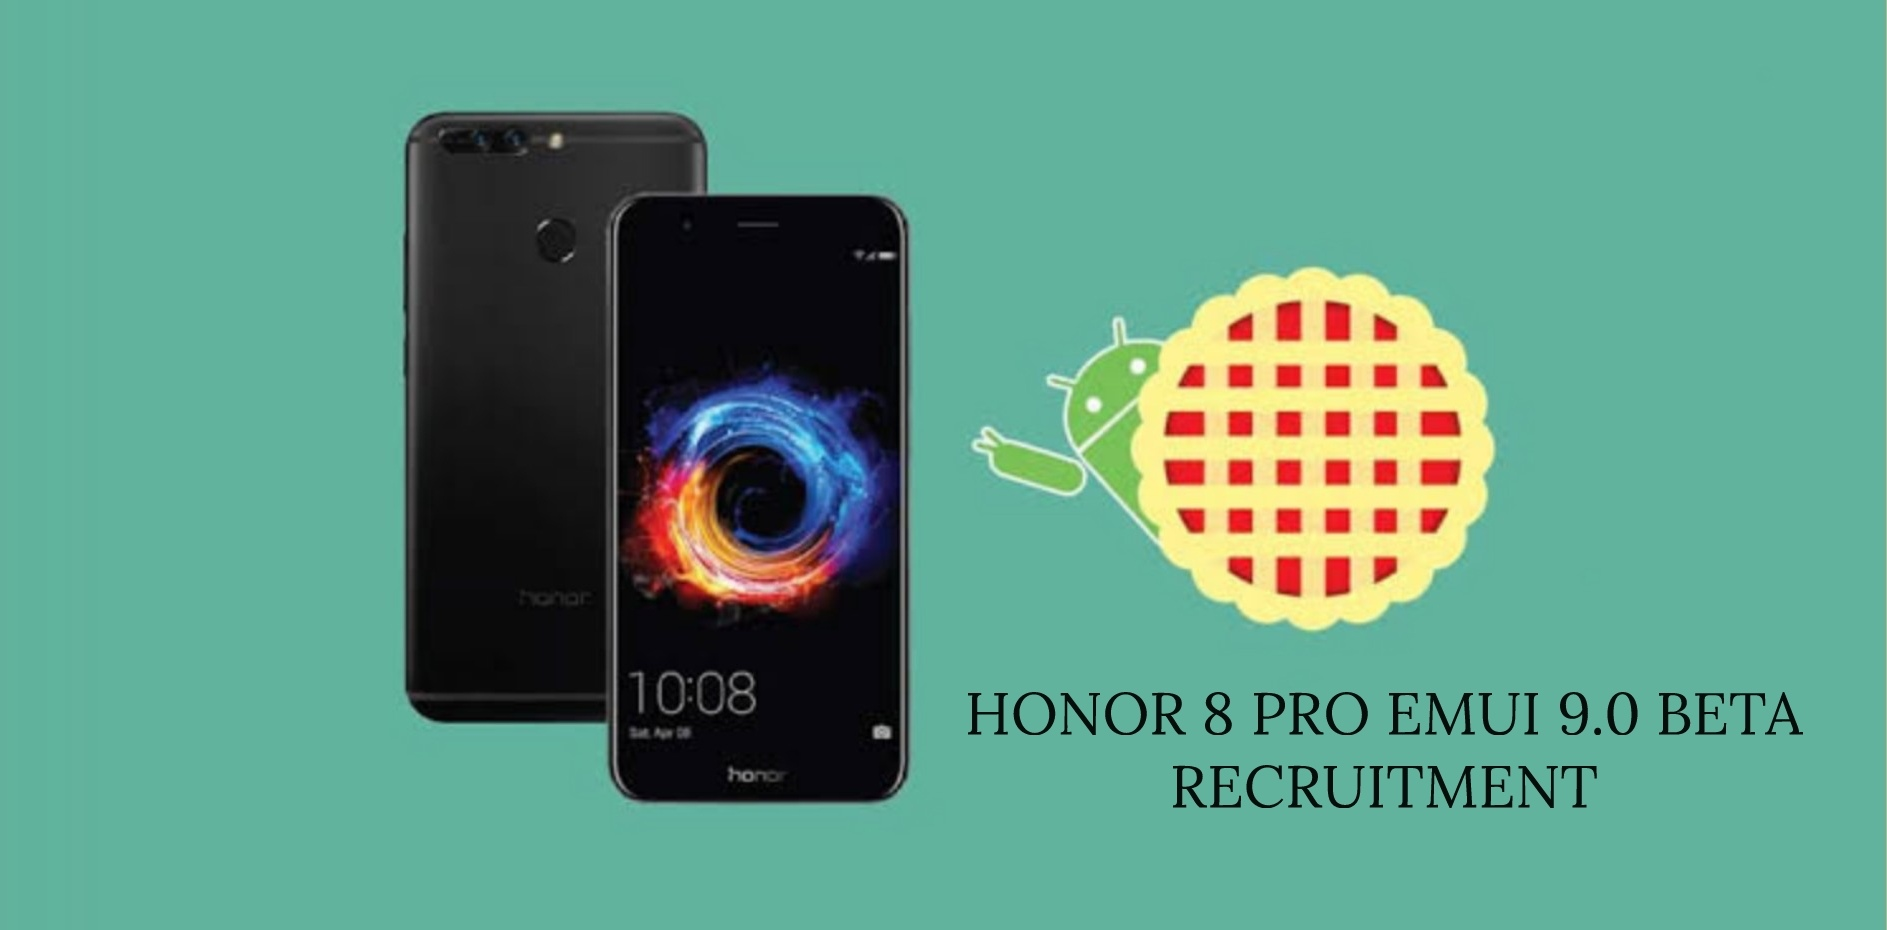 EMUI 9 0 beta is now available for the Honor 8 Pro - Huawei Central